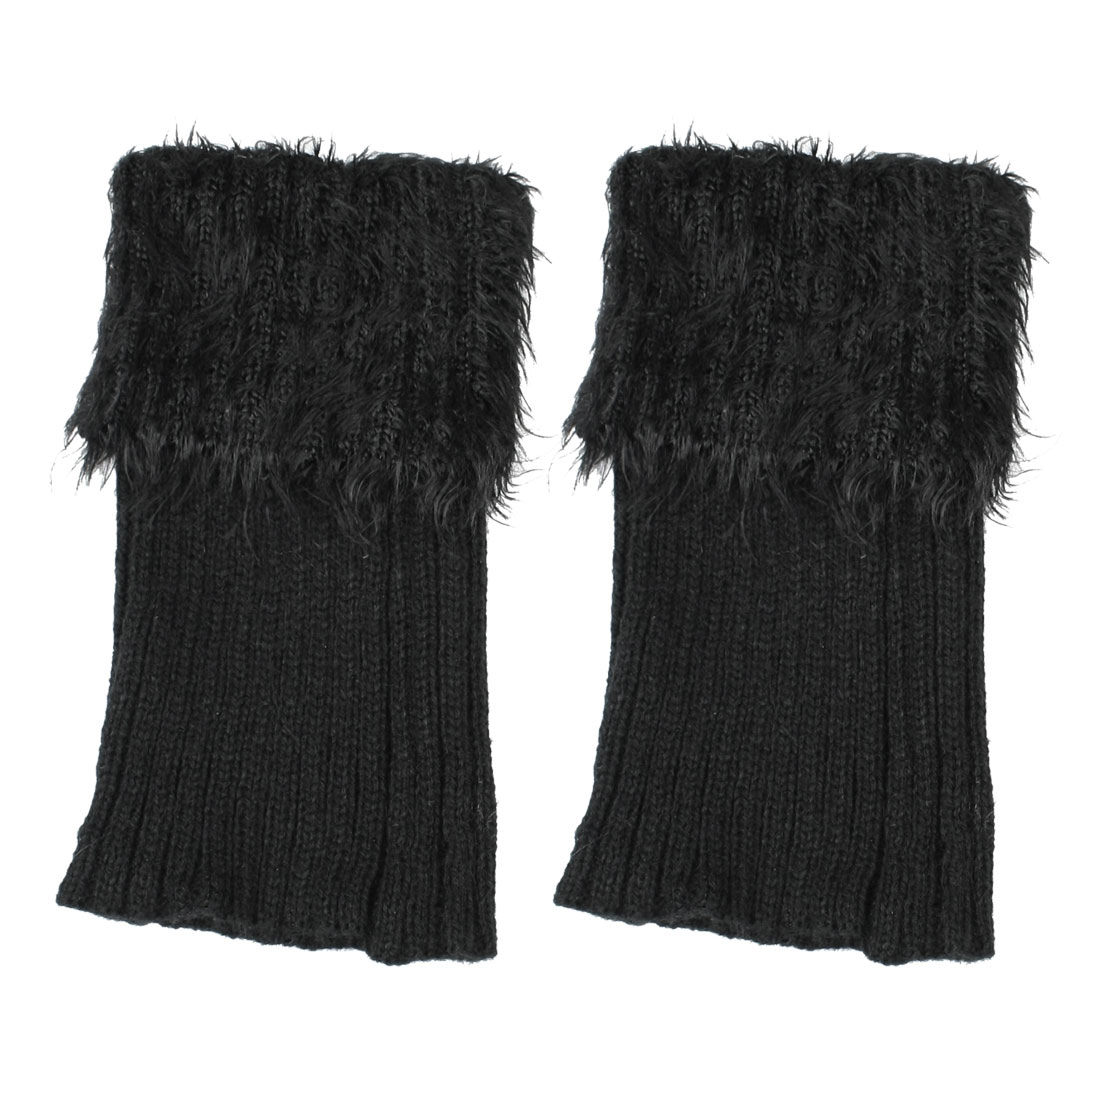 "Women Lady Black Faux Fur Top Stretch Ankle Lower Leg Warmers Pair 6.7"" Length"